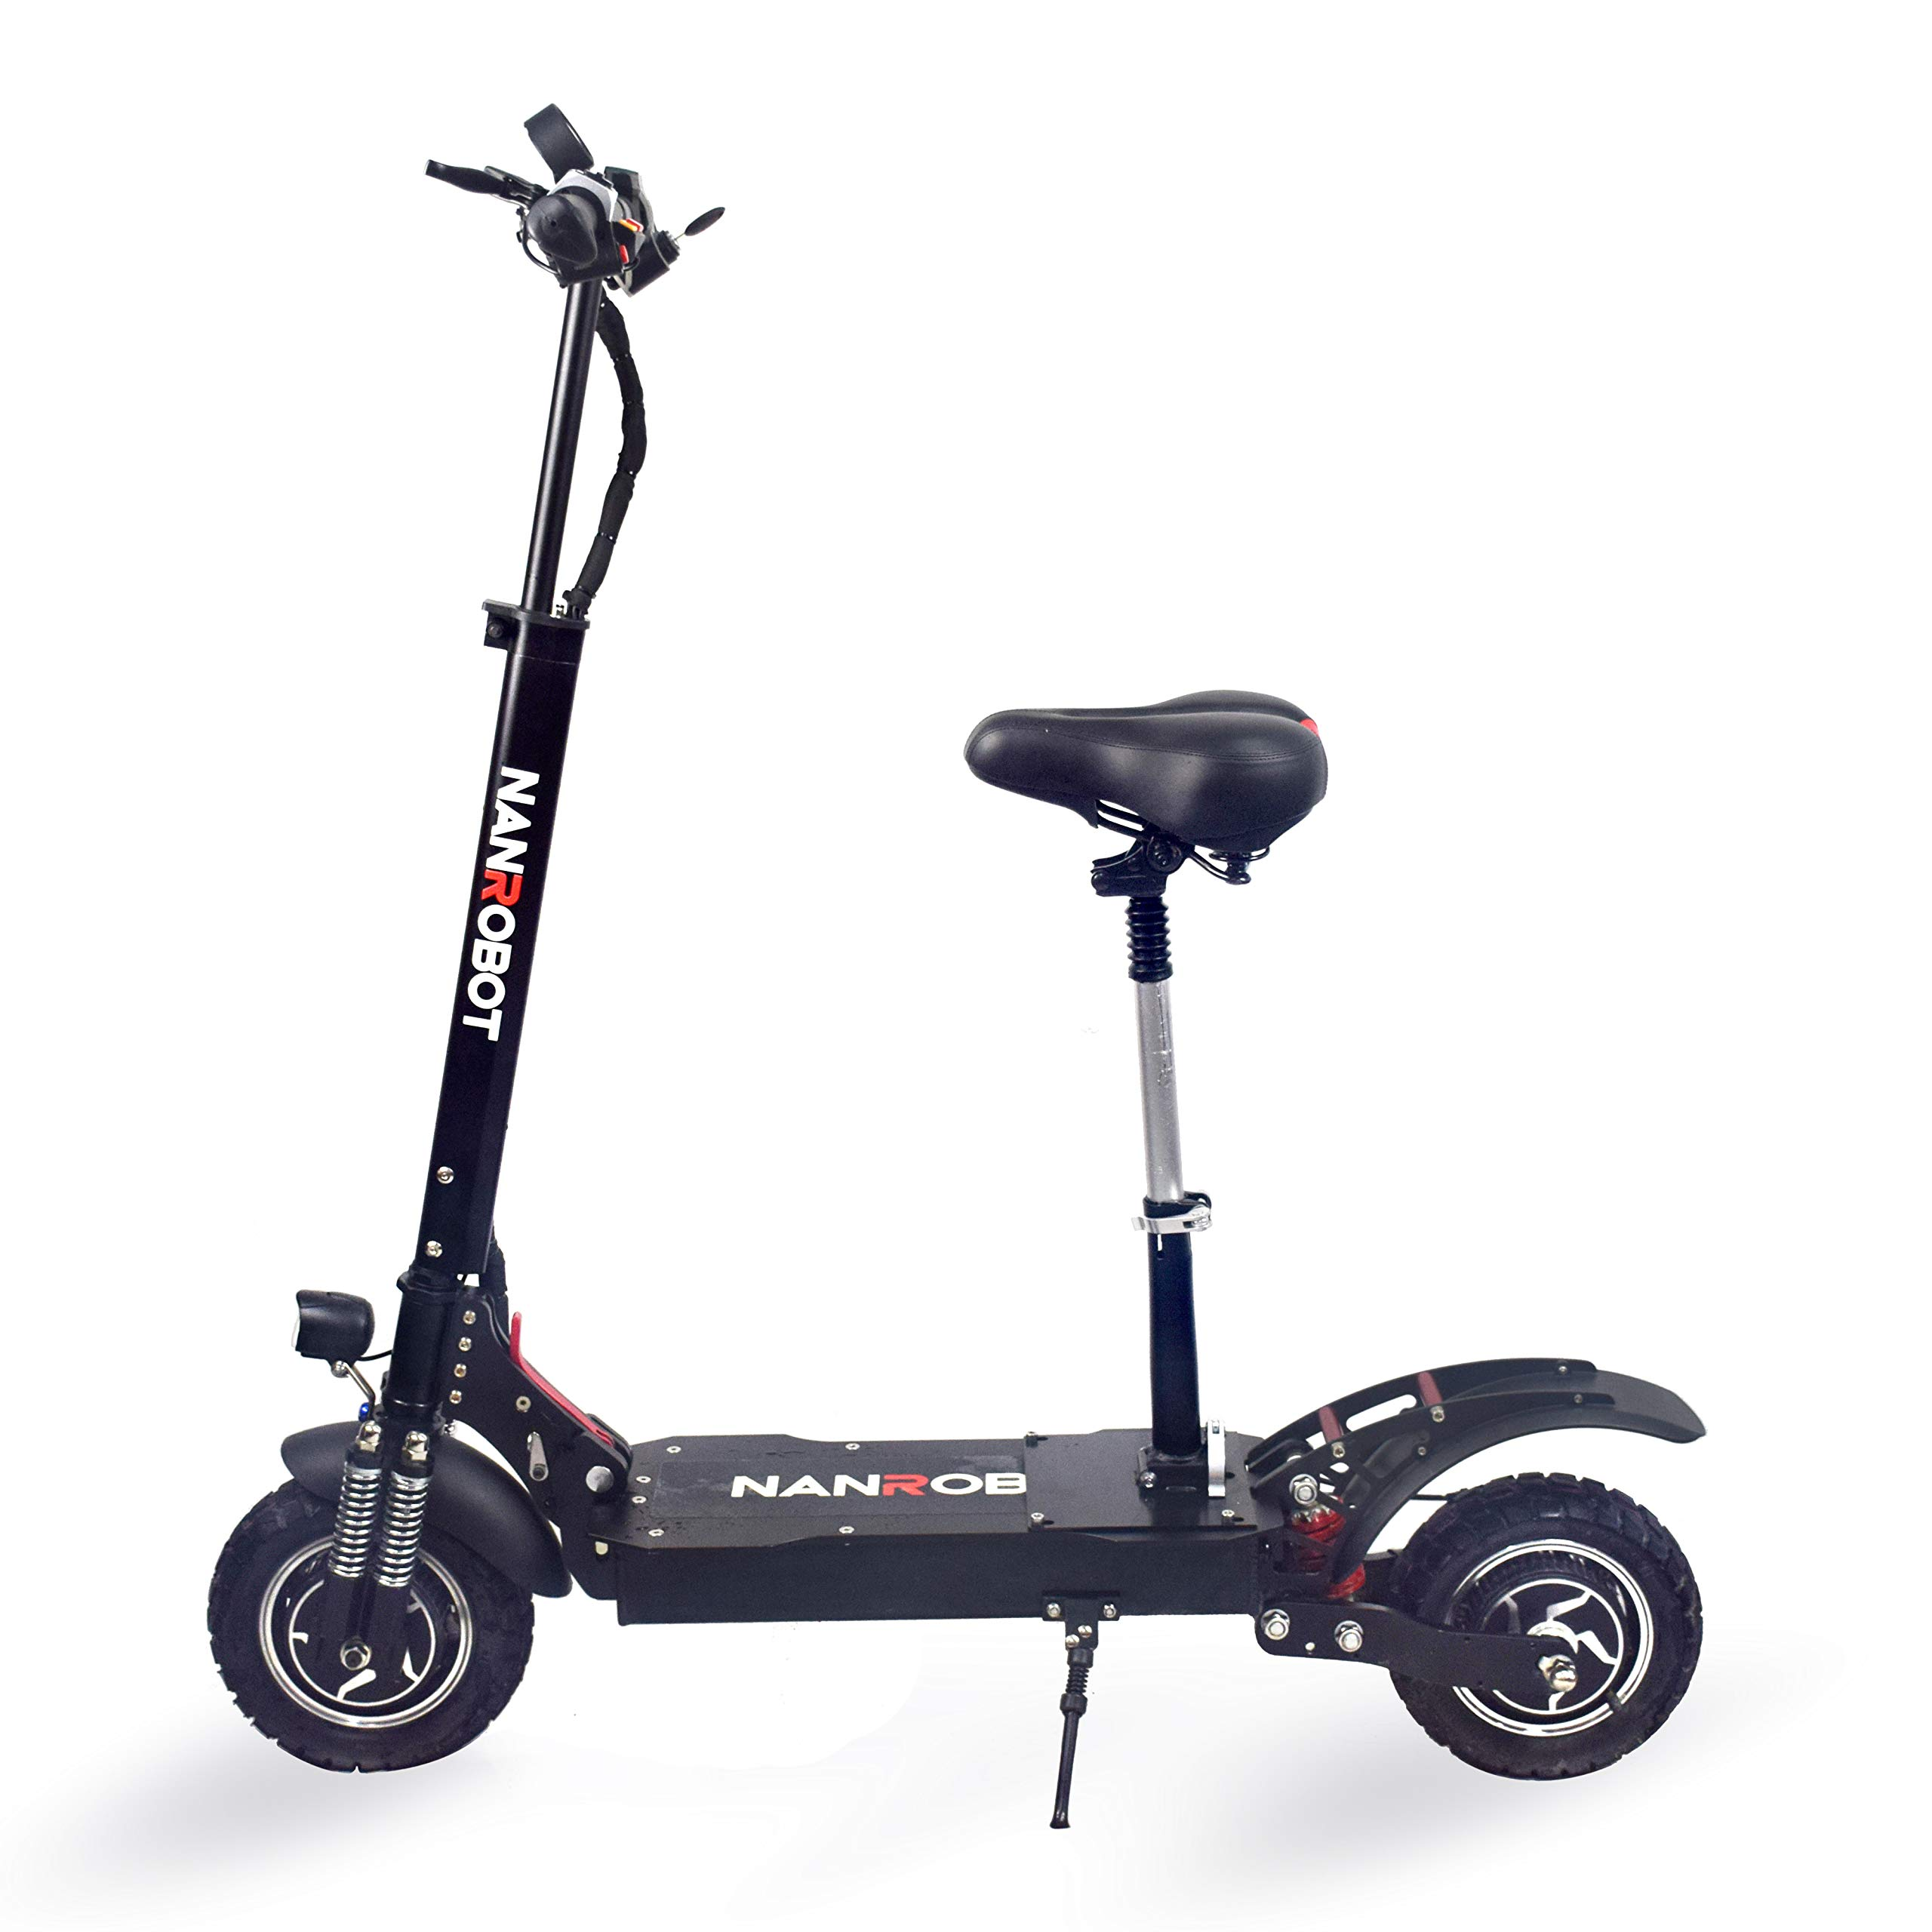 NANROBOT D4+ Electric Scooter -Portable Folding, 40 MPH and 45 Mile Range of Riding, 2000W Motor Power and 330lb Load